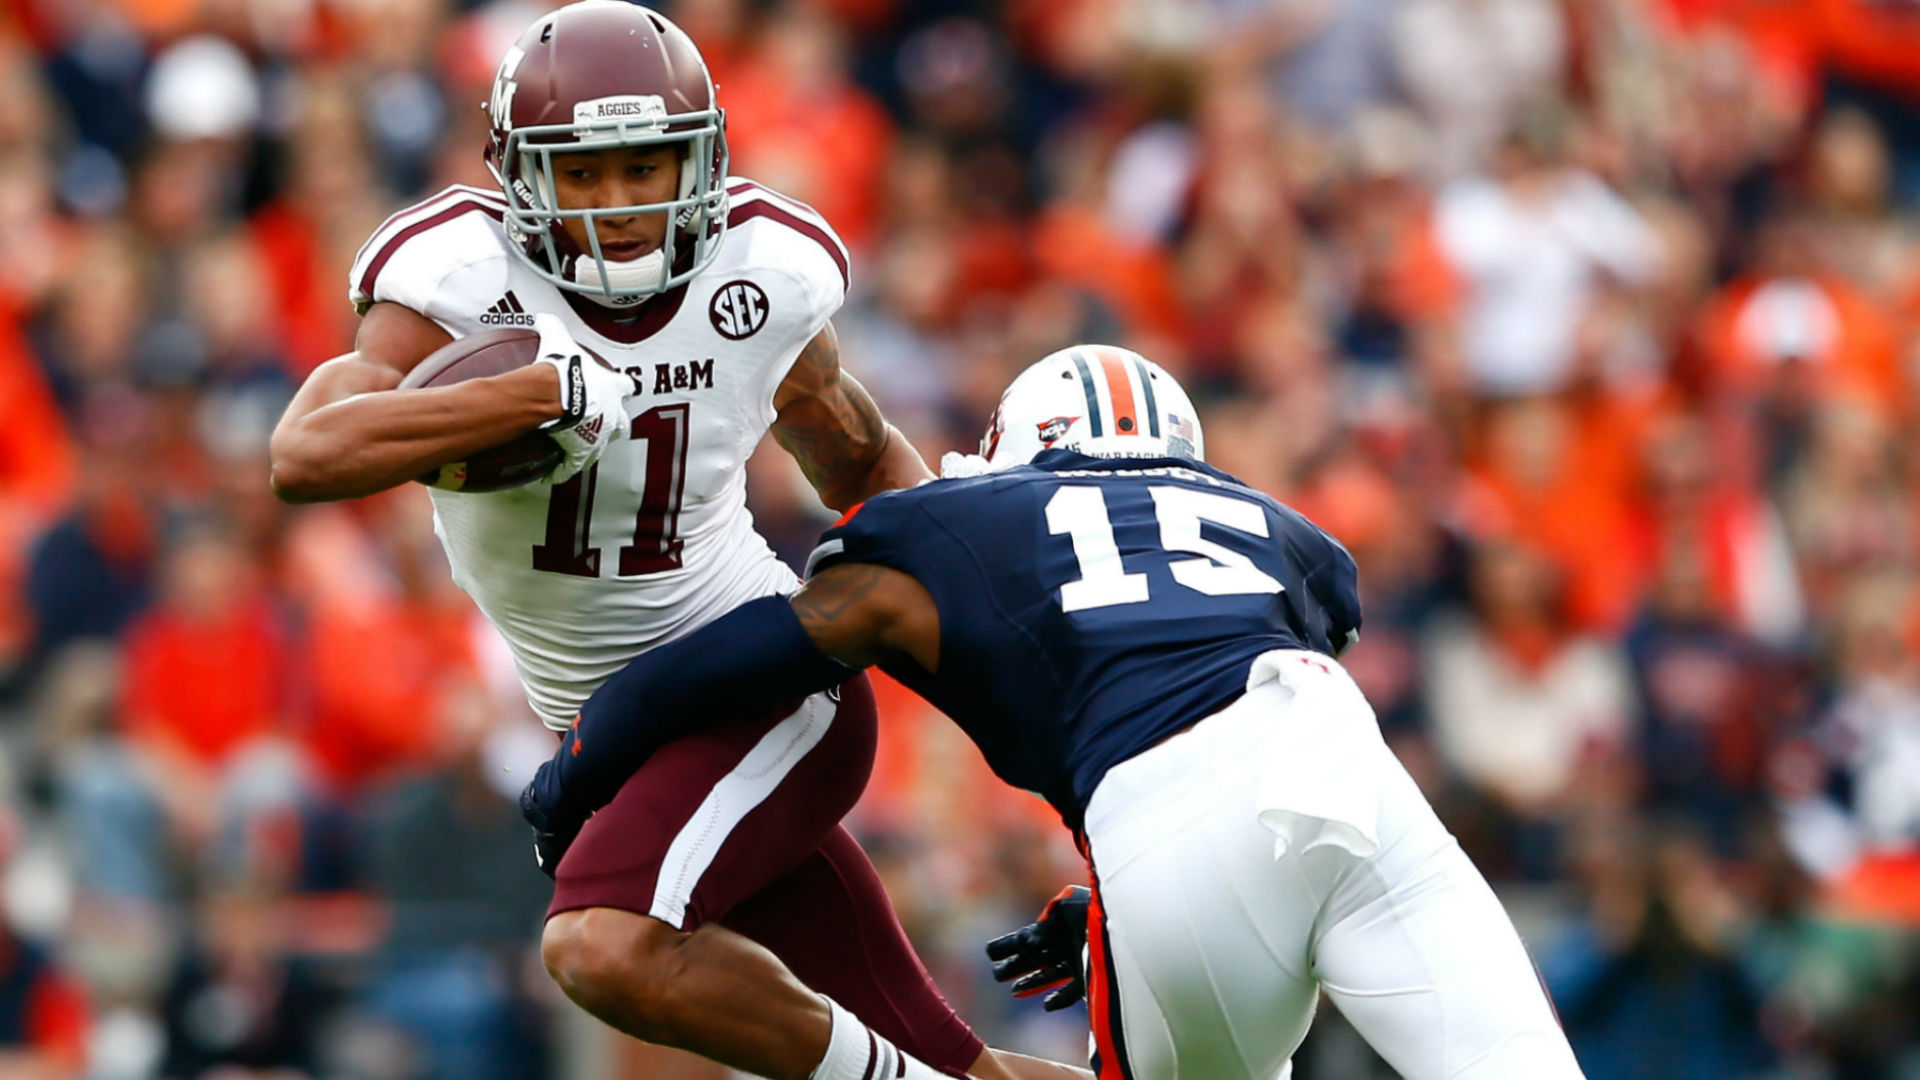 LSU at Texas A&M betting preview and pick – Aggies look to end home cover drought